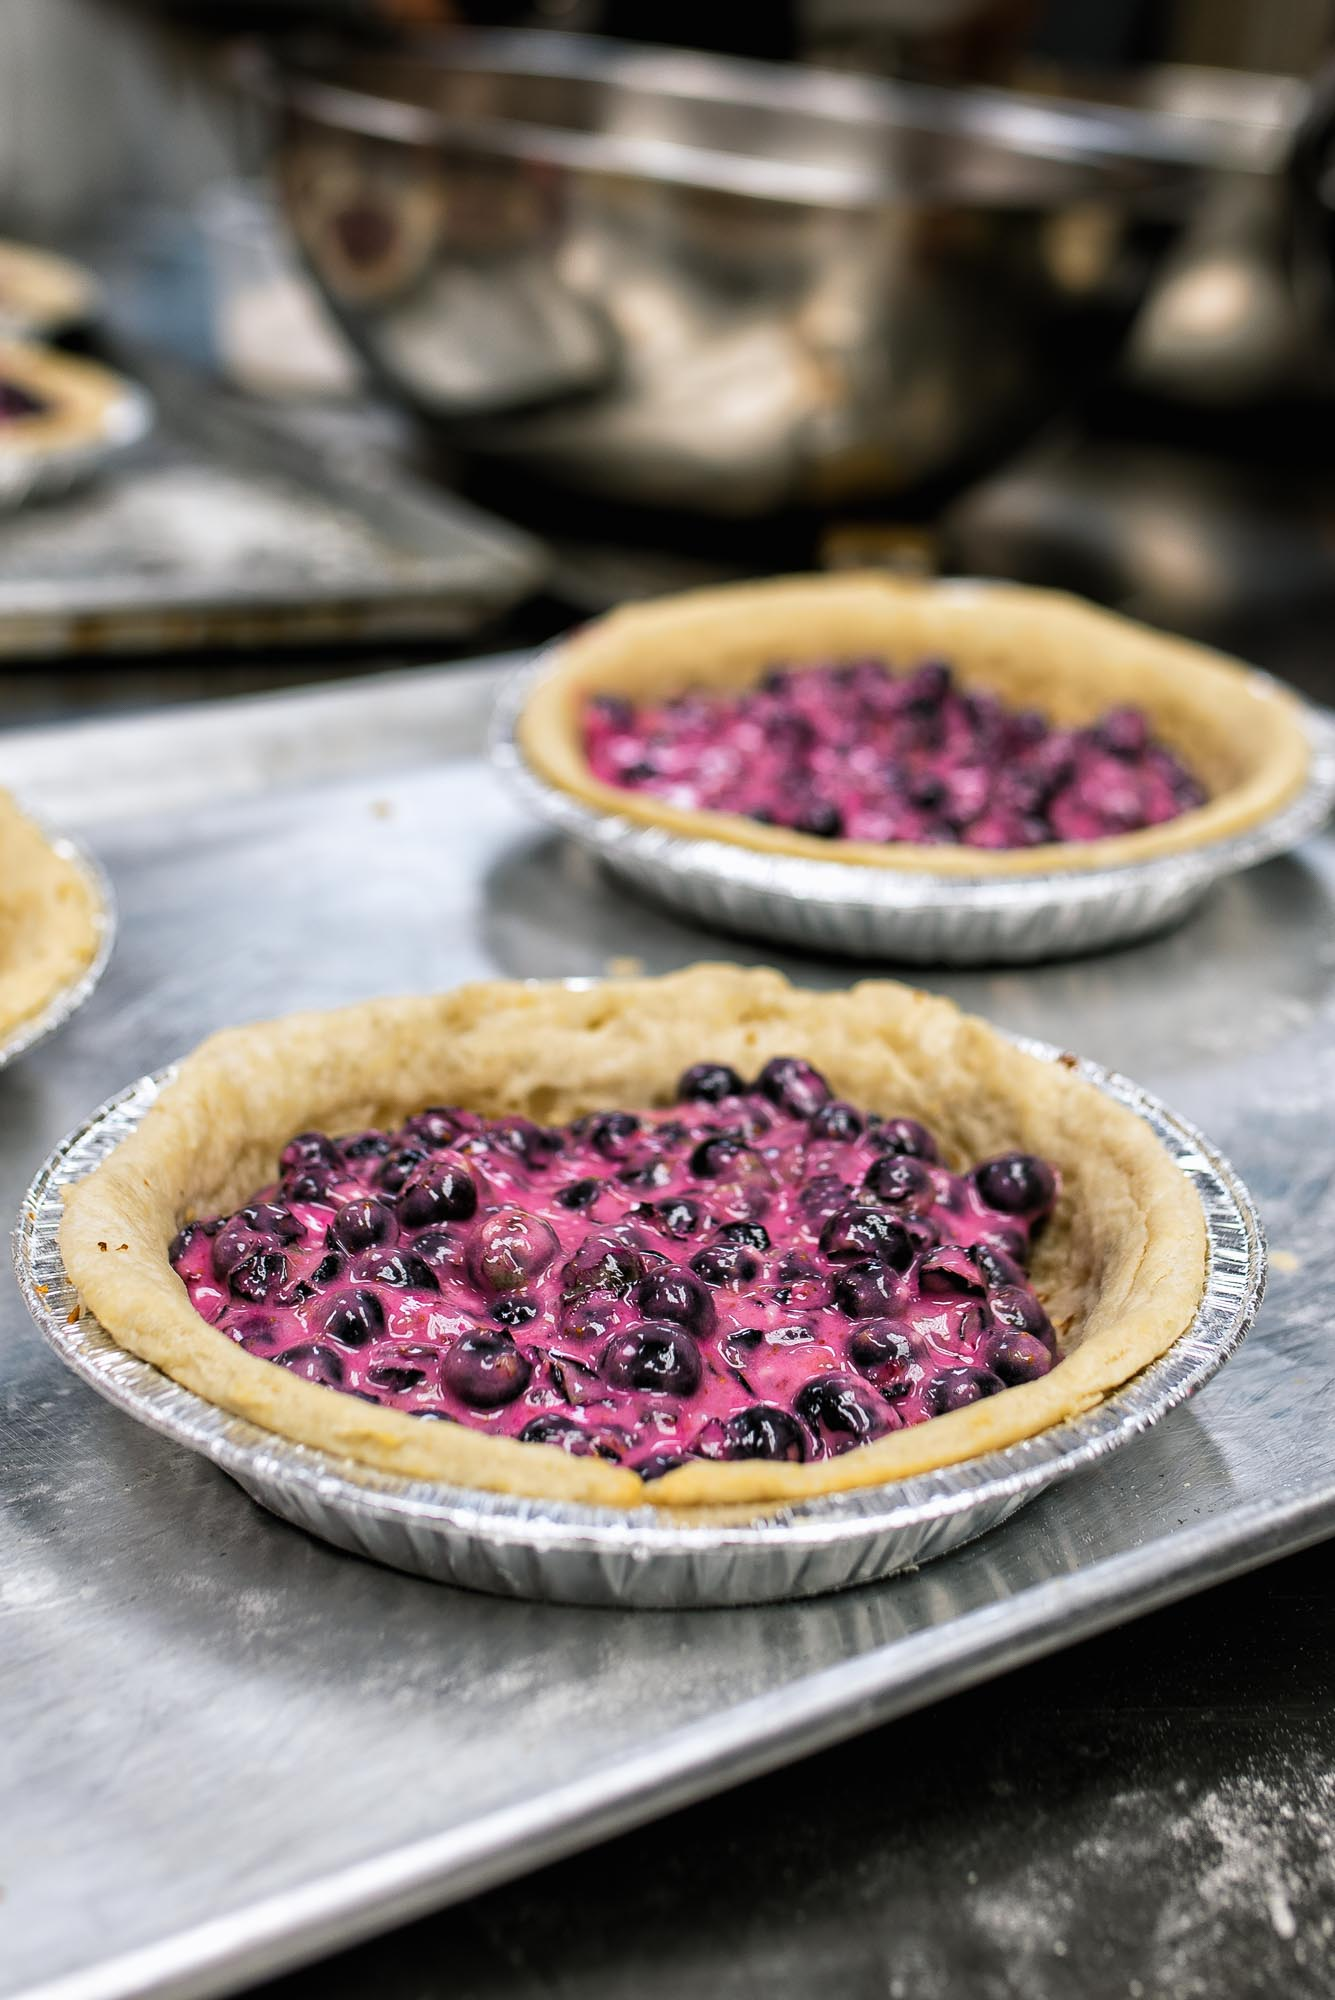 Blueberry pie - ginger, lemon